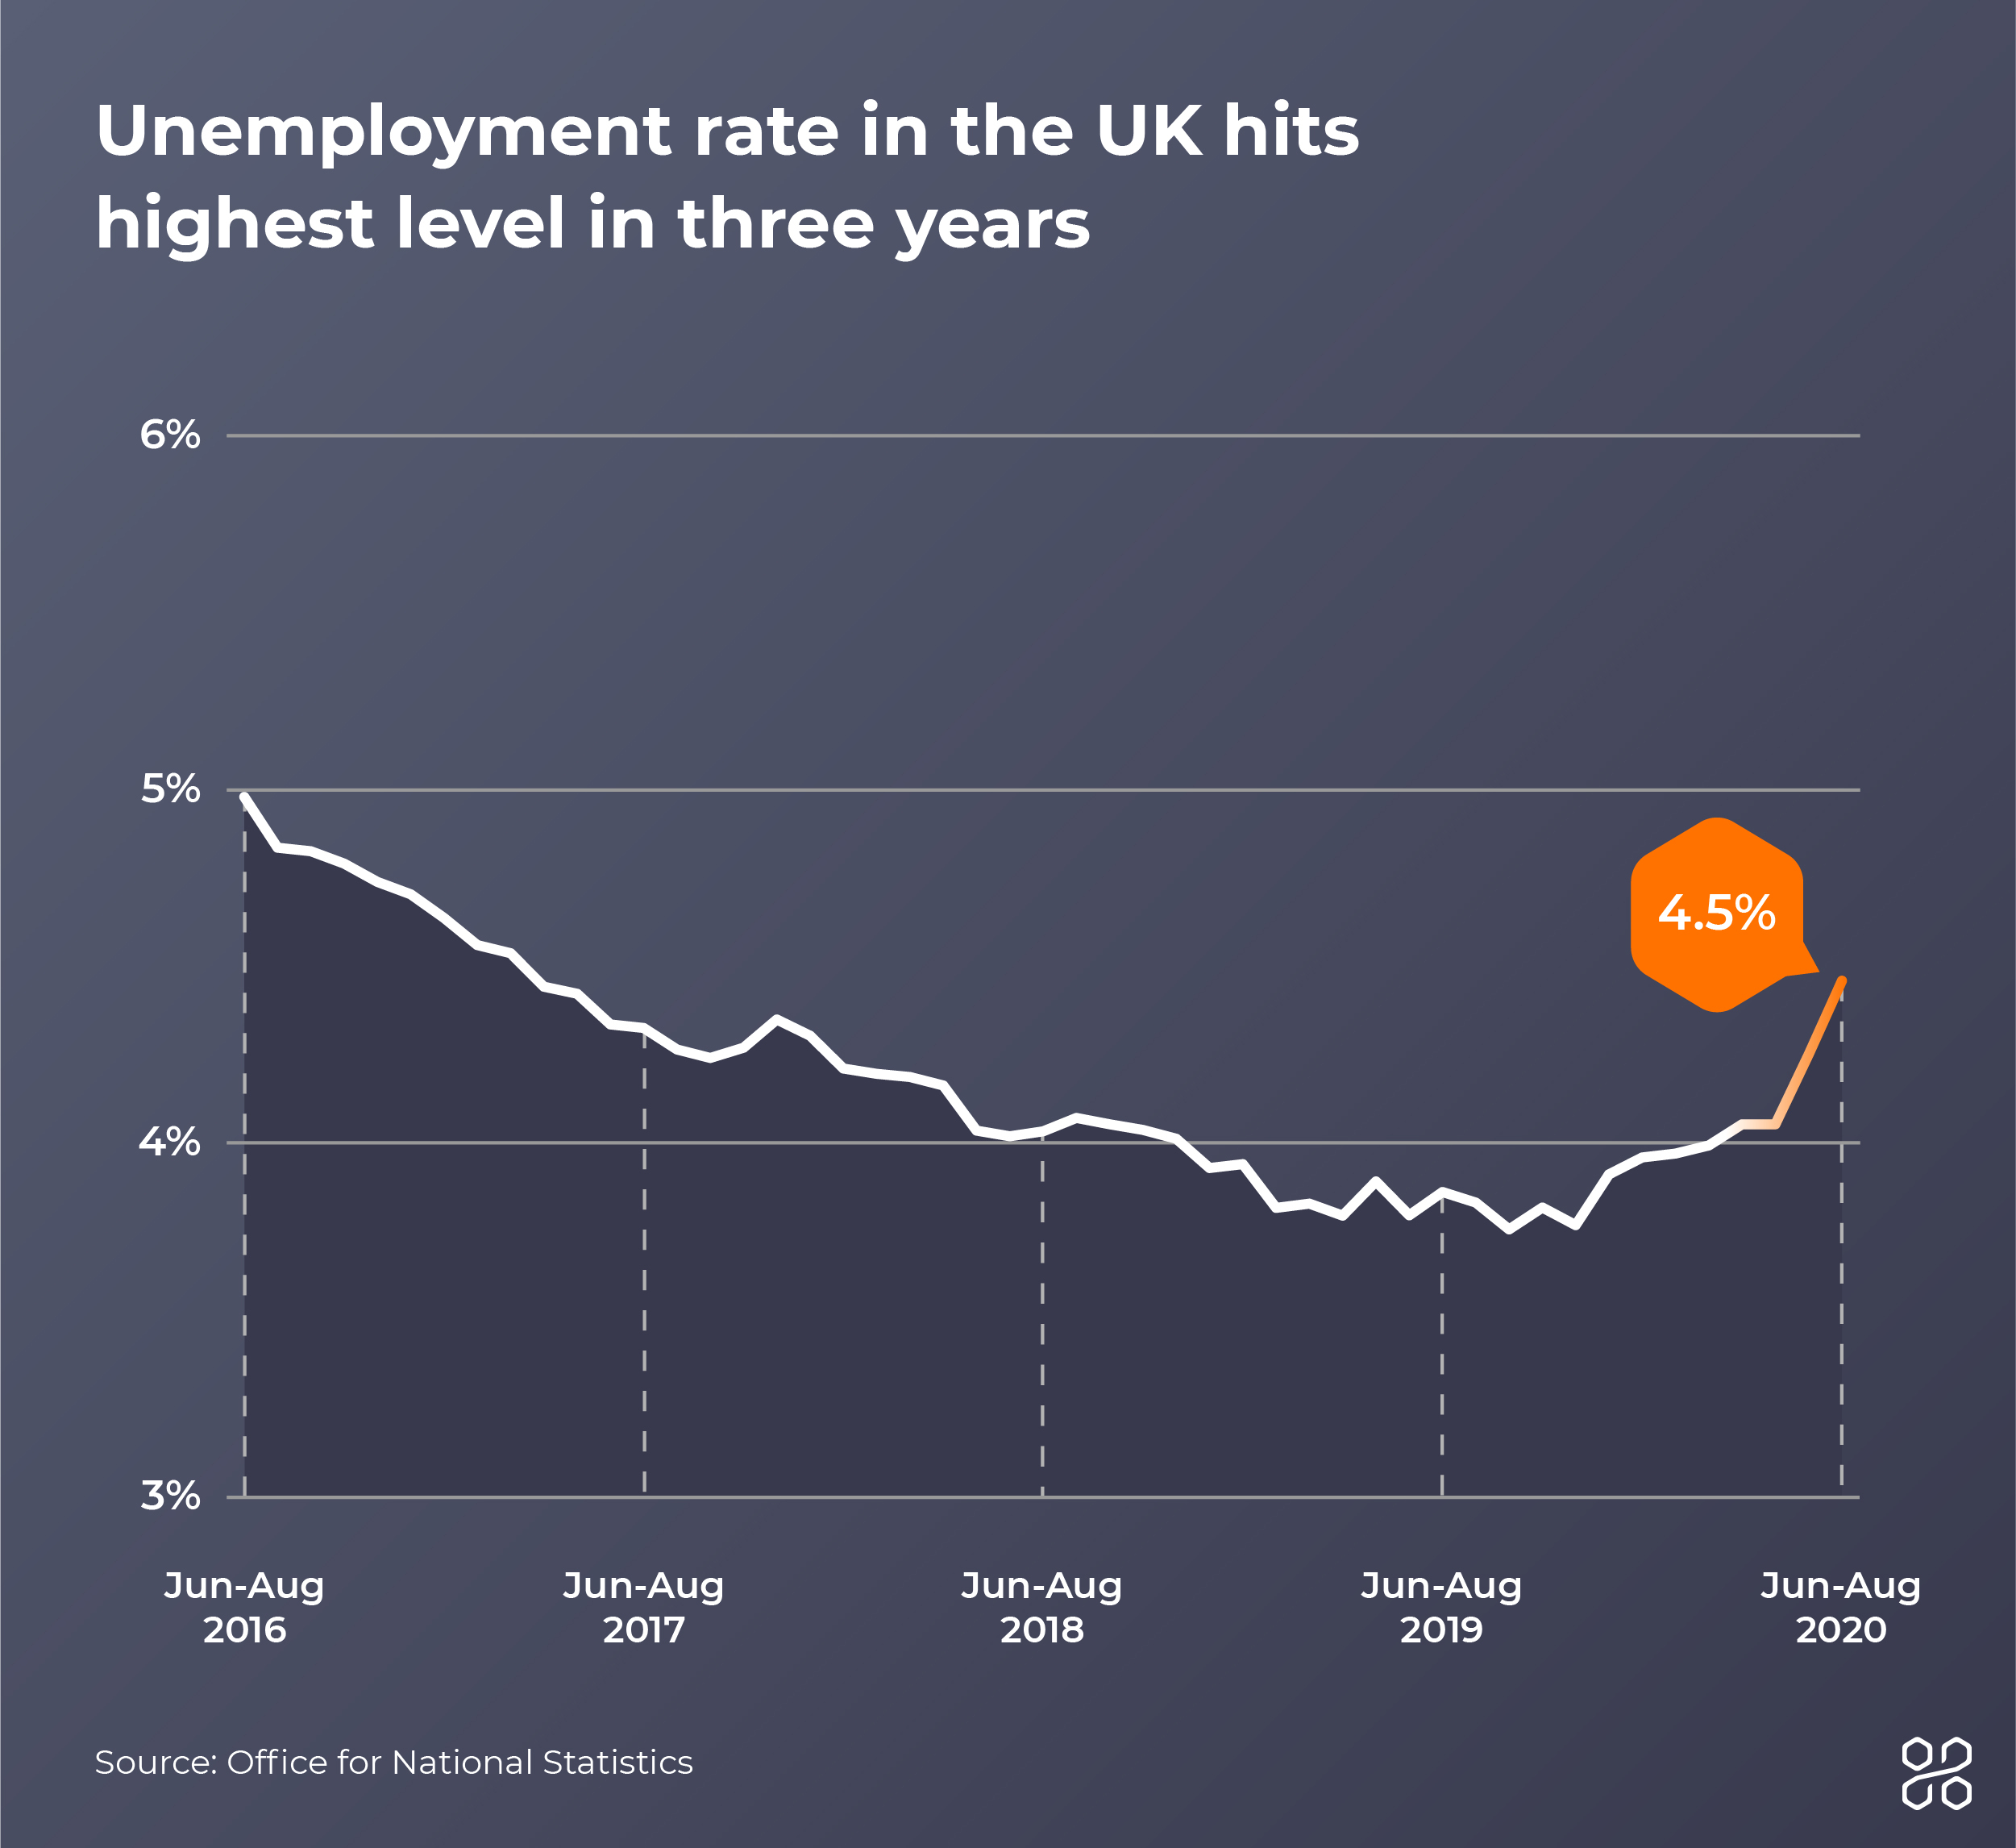 a chart showing the increase in UK unemployment rate between 2016 and 2020